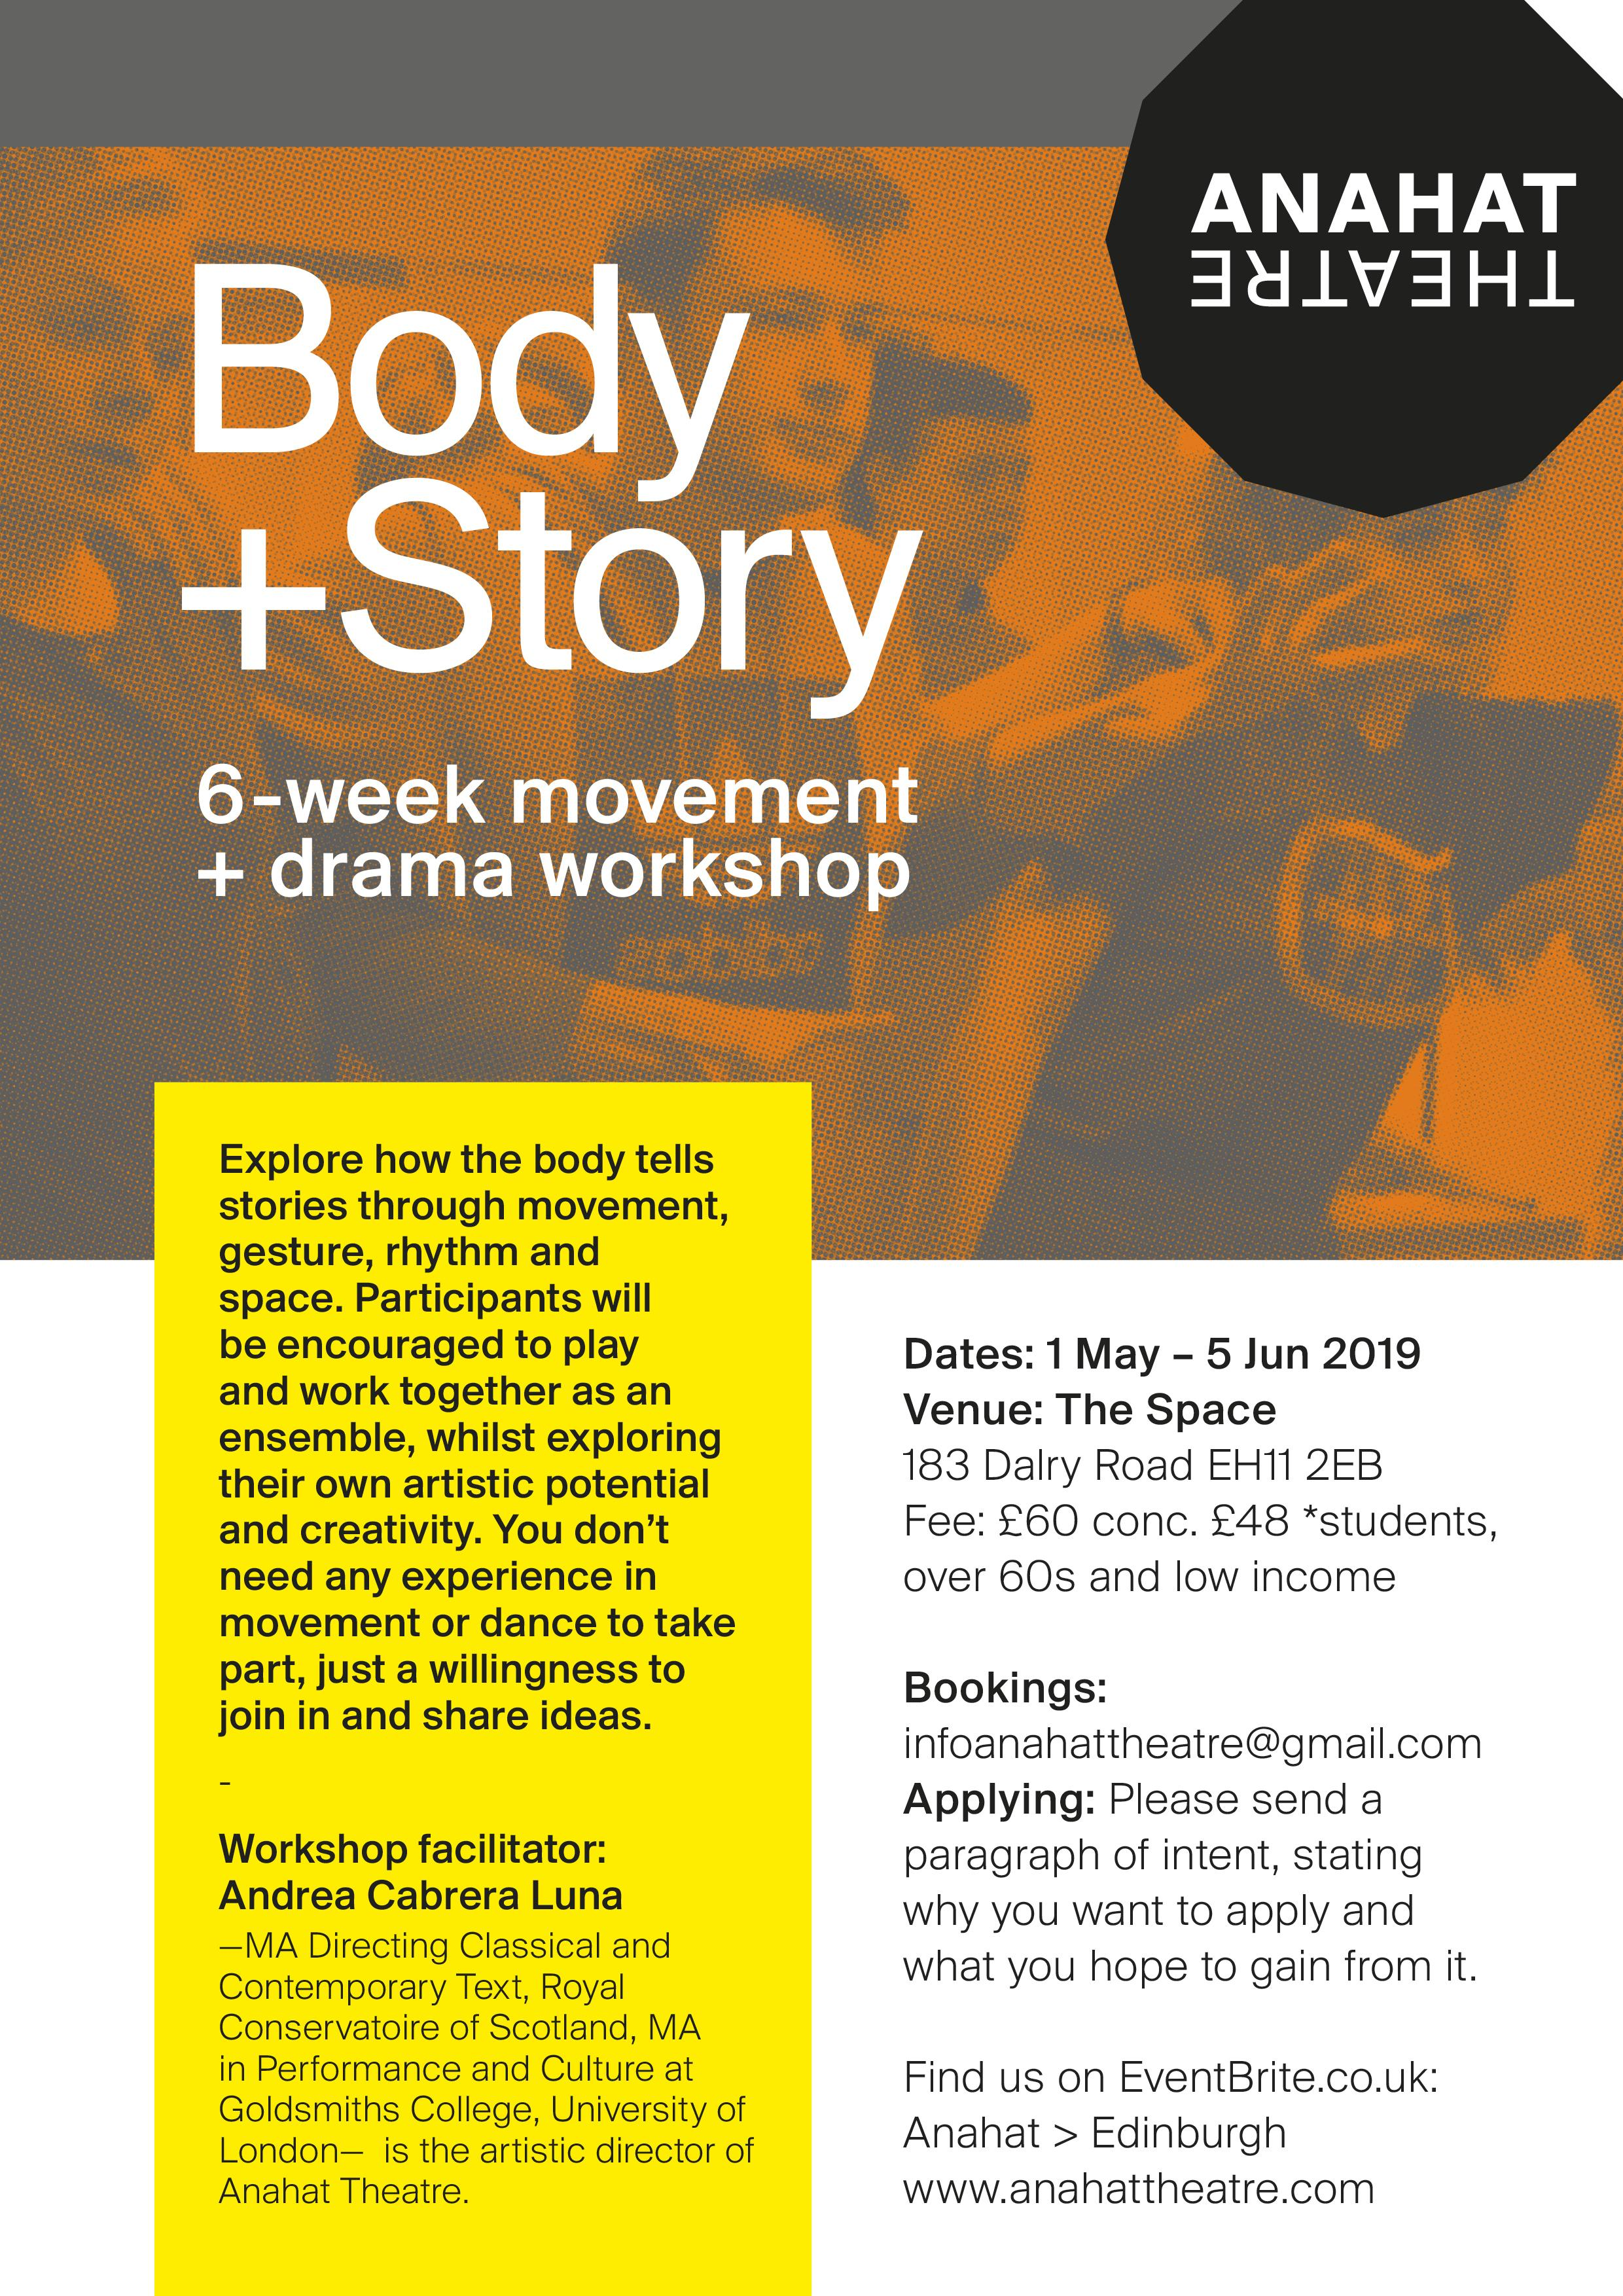 Body + Story (4 week online theatre course)